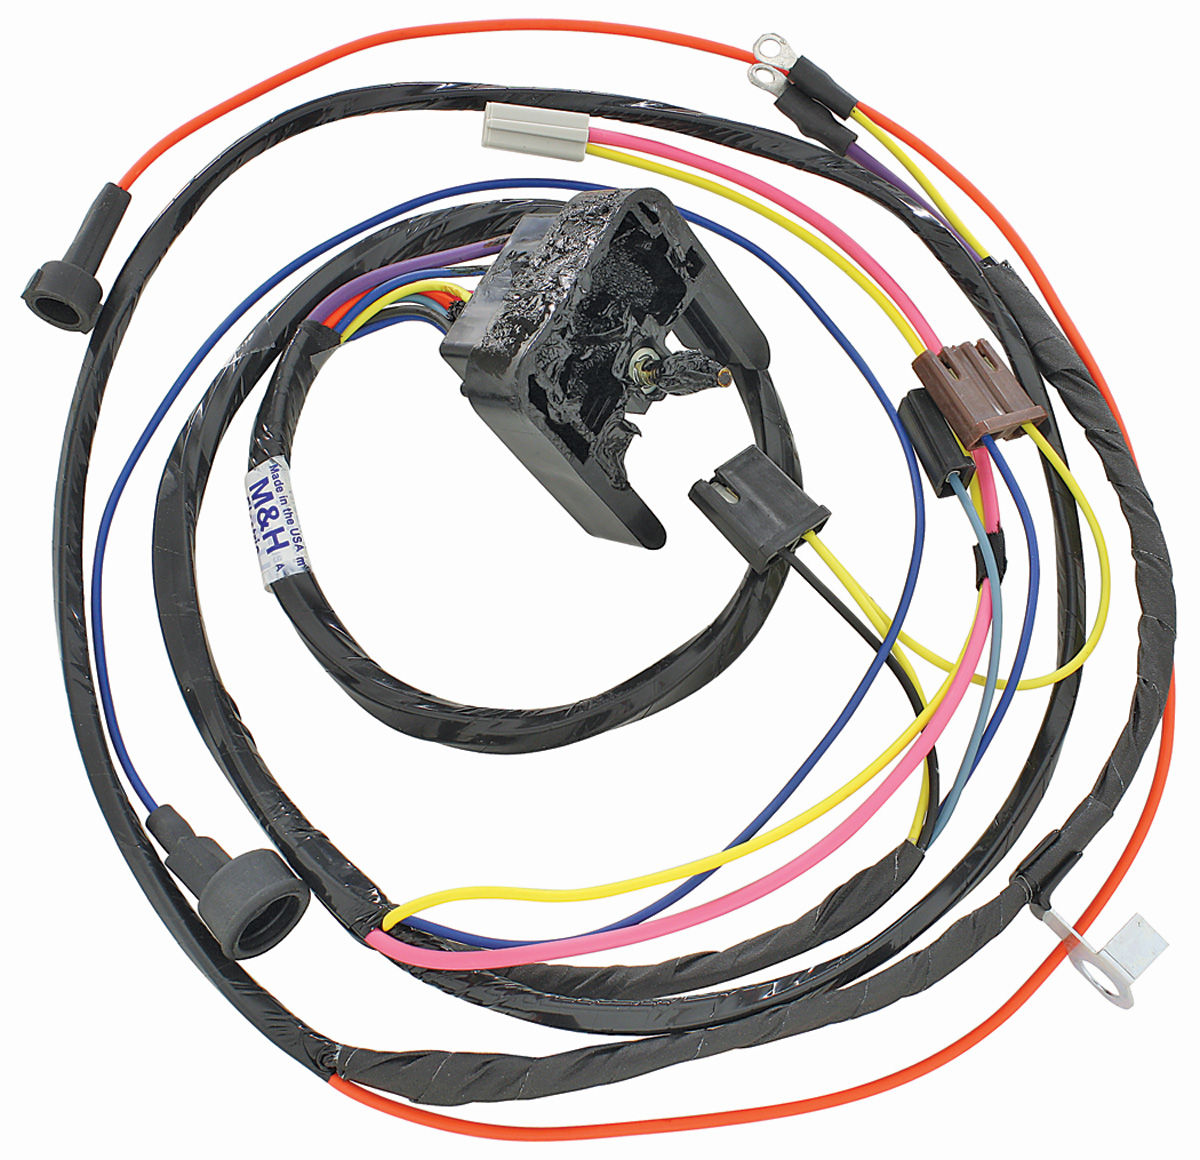 1970 chevelle wiring harness 1970 image wiring diagram 1970 chevelle wiring harness 1970 auto wiring diagram schematic on 1970 chevelle wiring harness